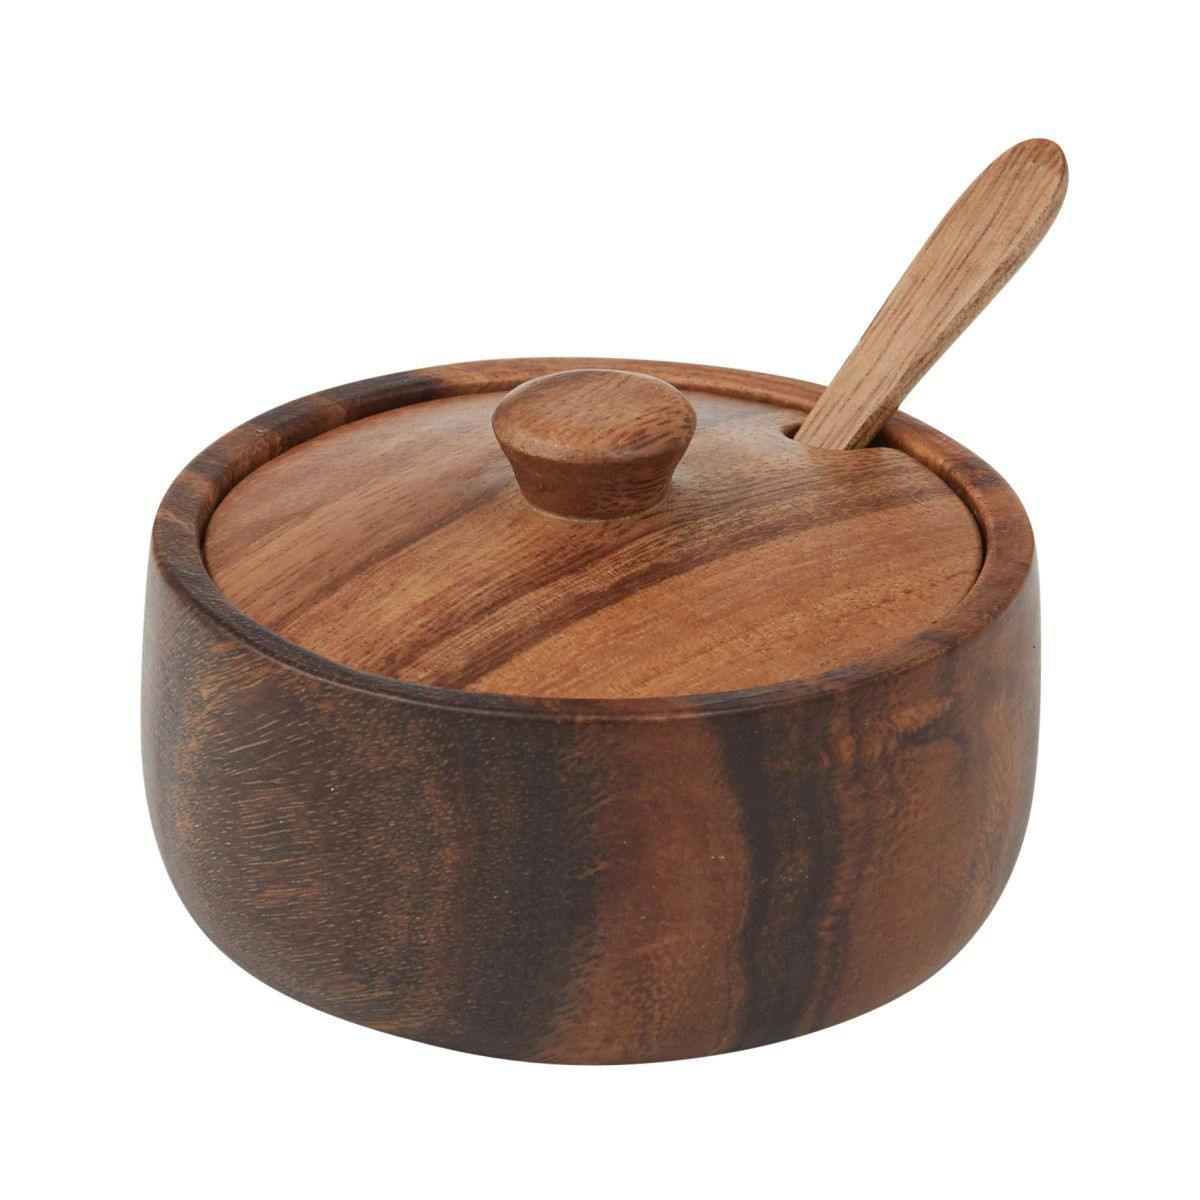 Davis & Waddell Acacia Timber Storage Bowl with Lid & Spoon